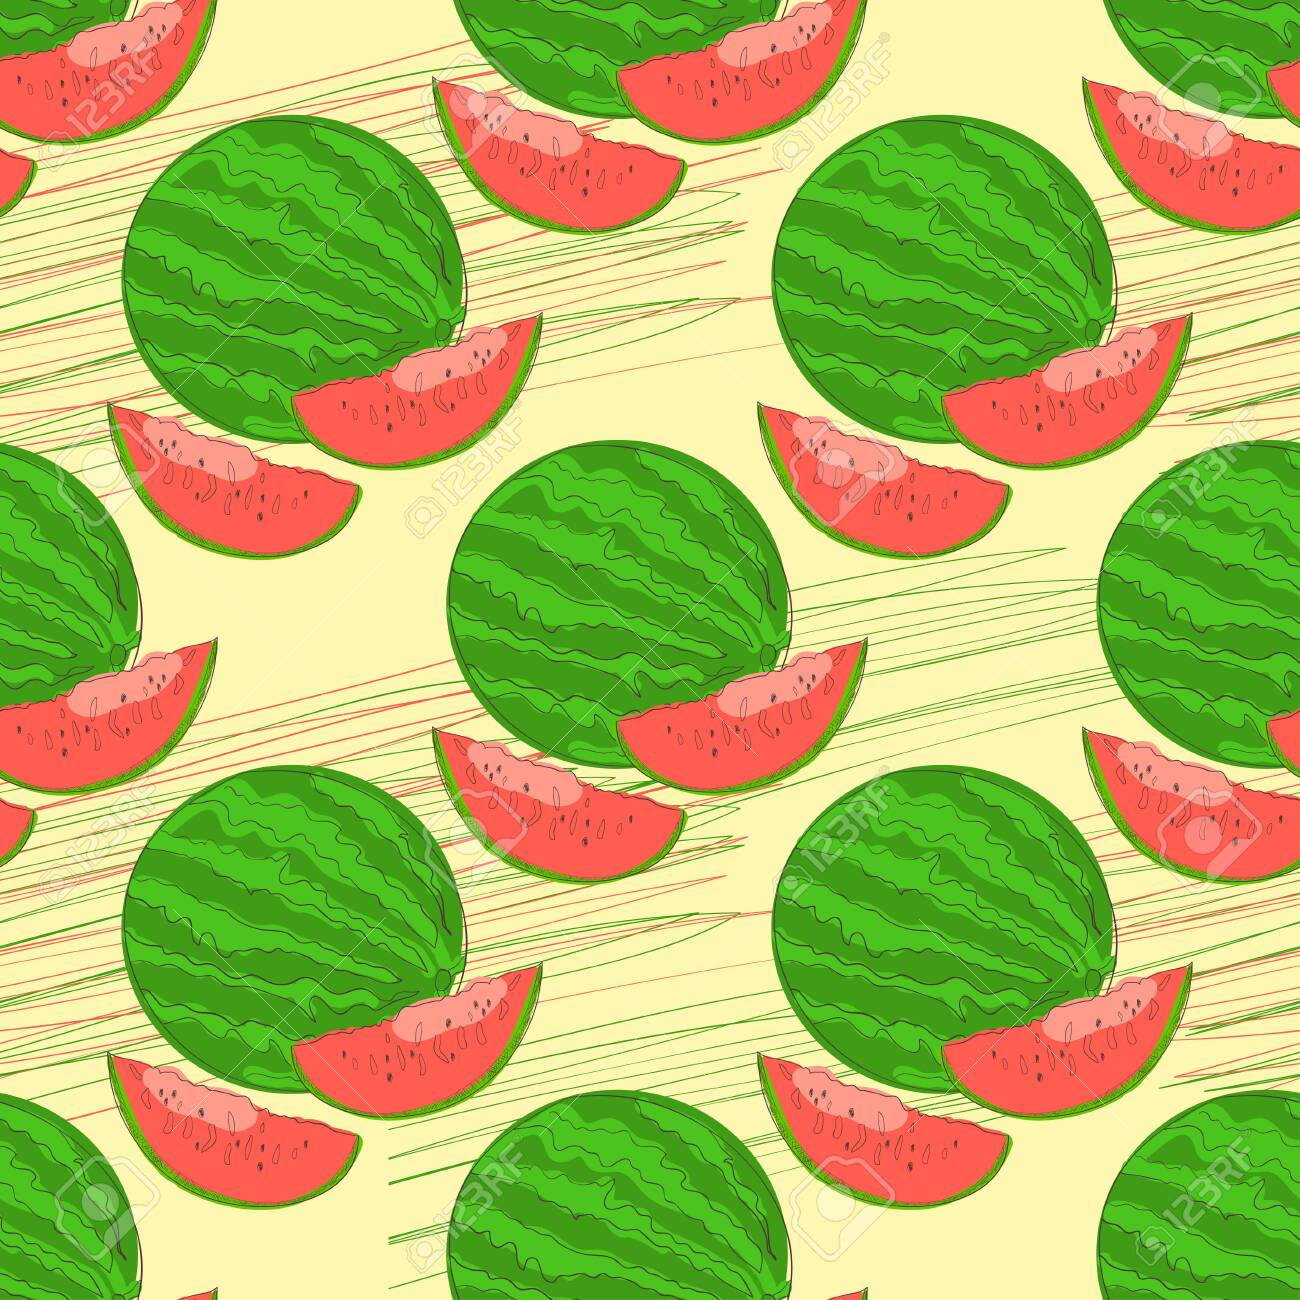 Watermelon Round Part Of Watermelon Background Texture Wallpaper Royalty Free Cliparts Vectors And Stock Illustration Image 113563102